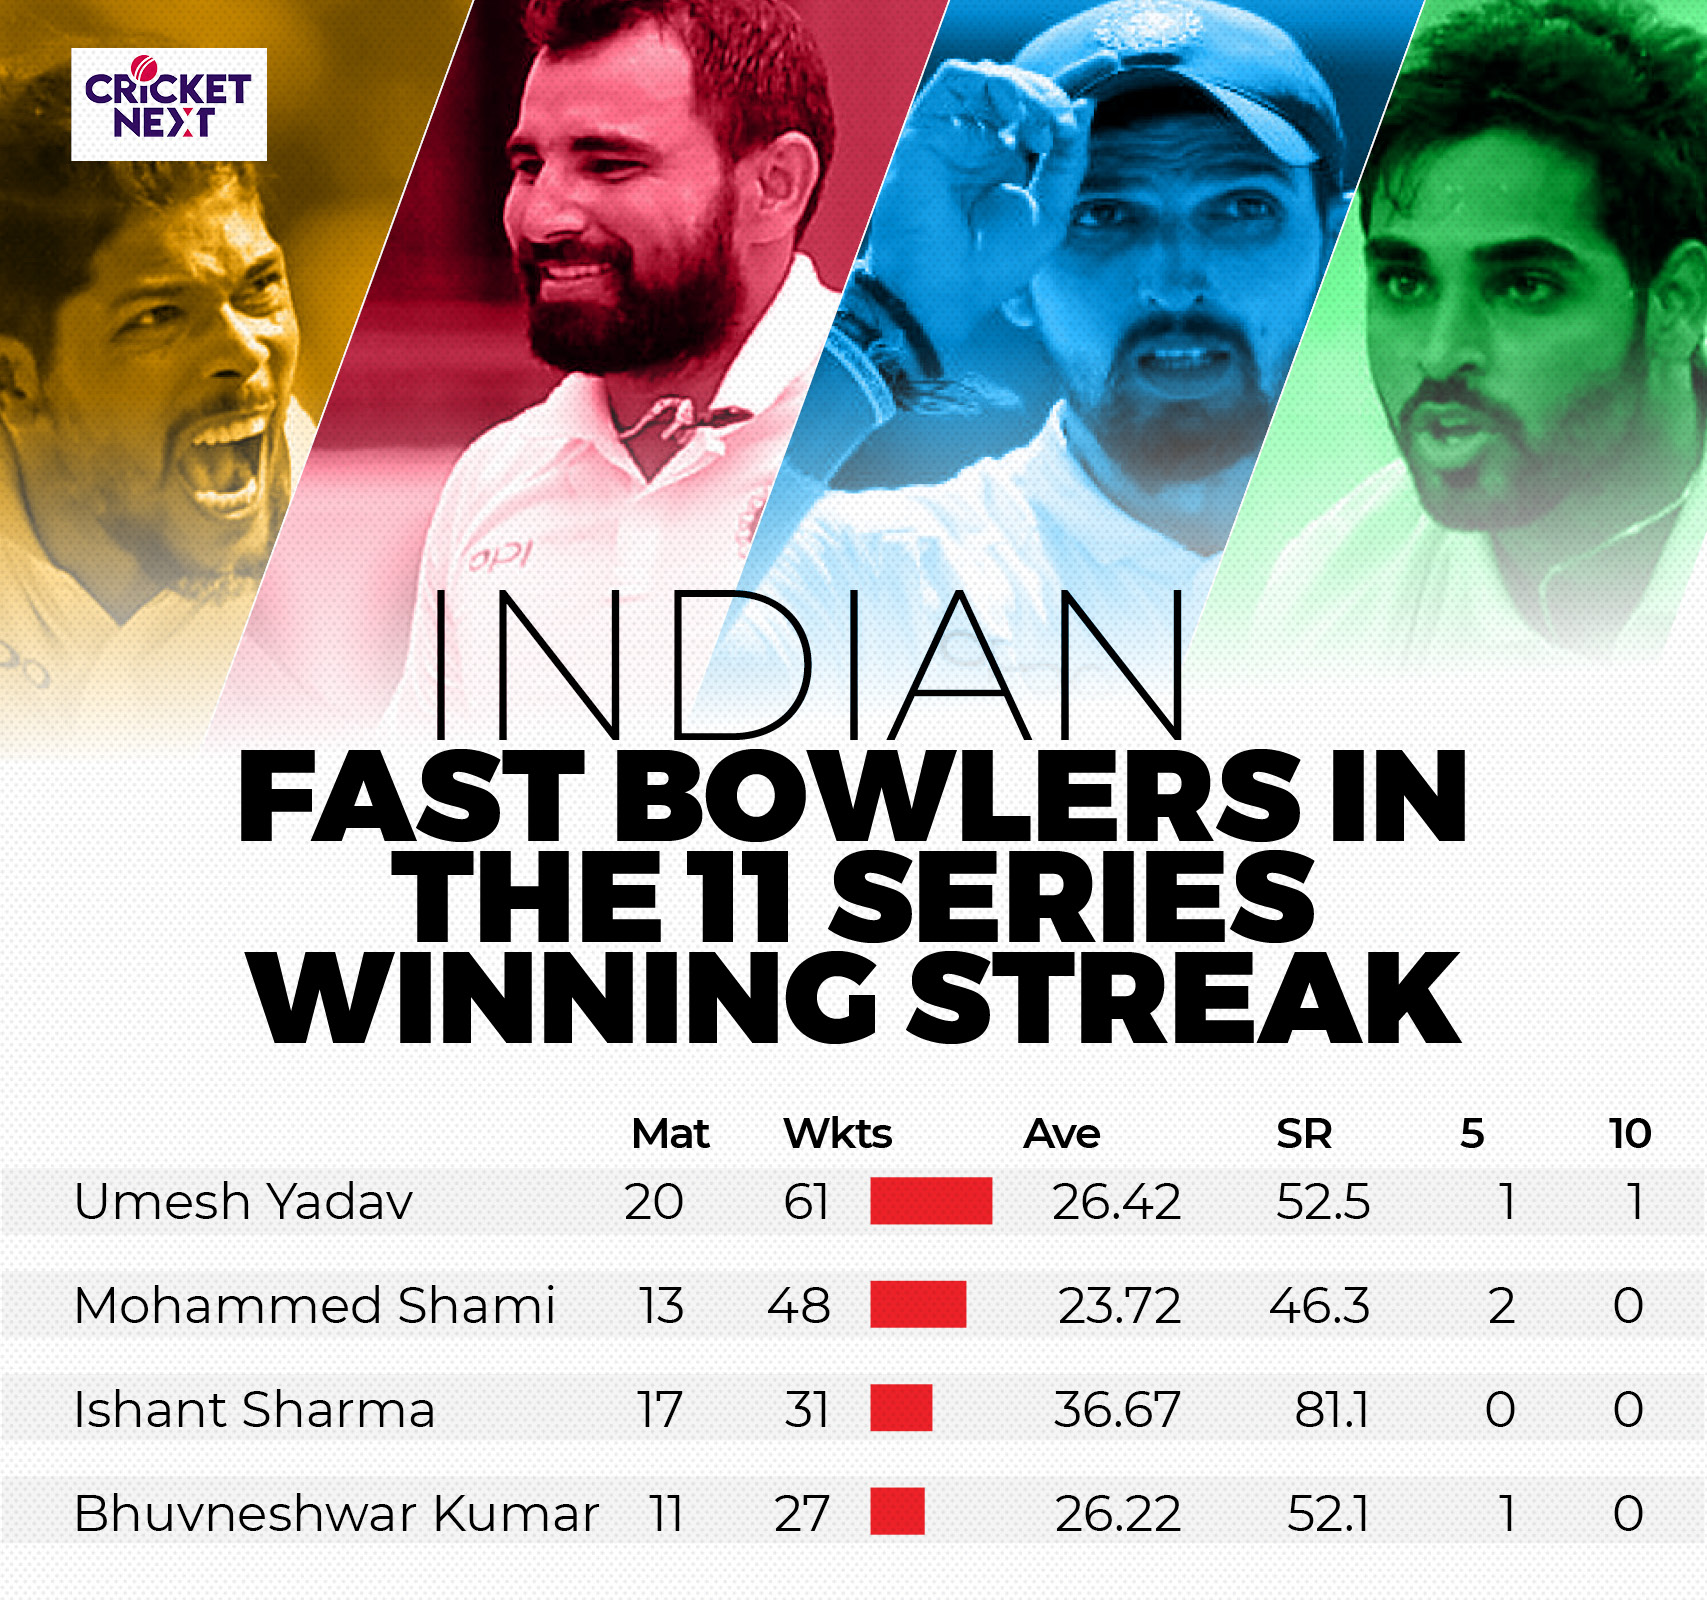 INDIA FAST BOWLERS